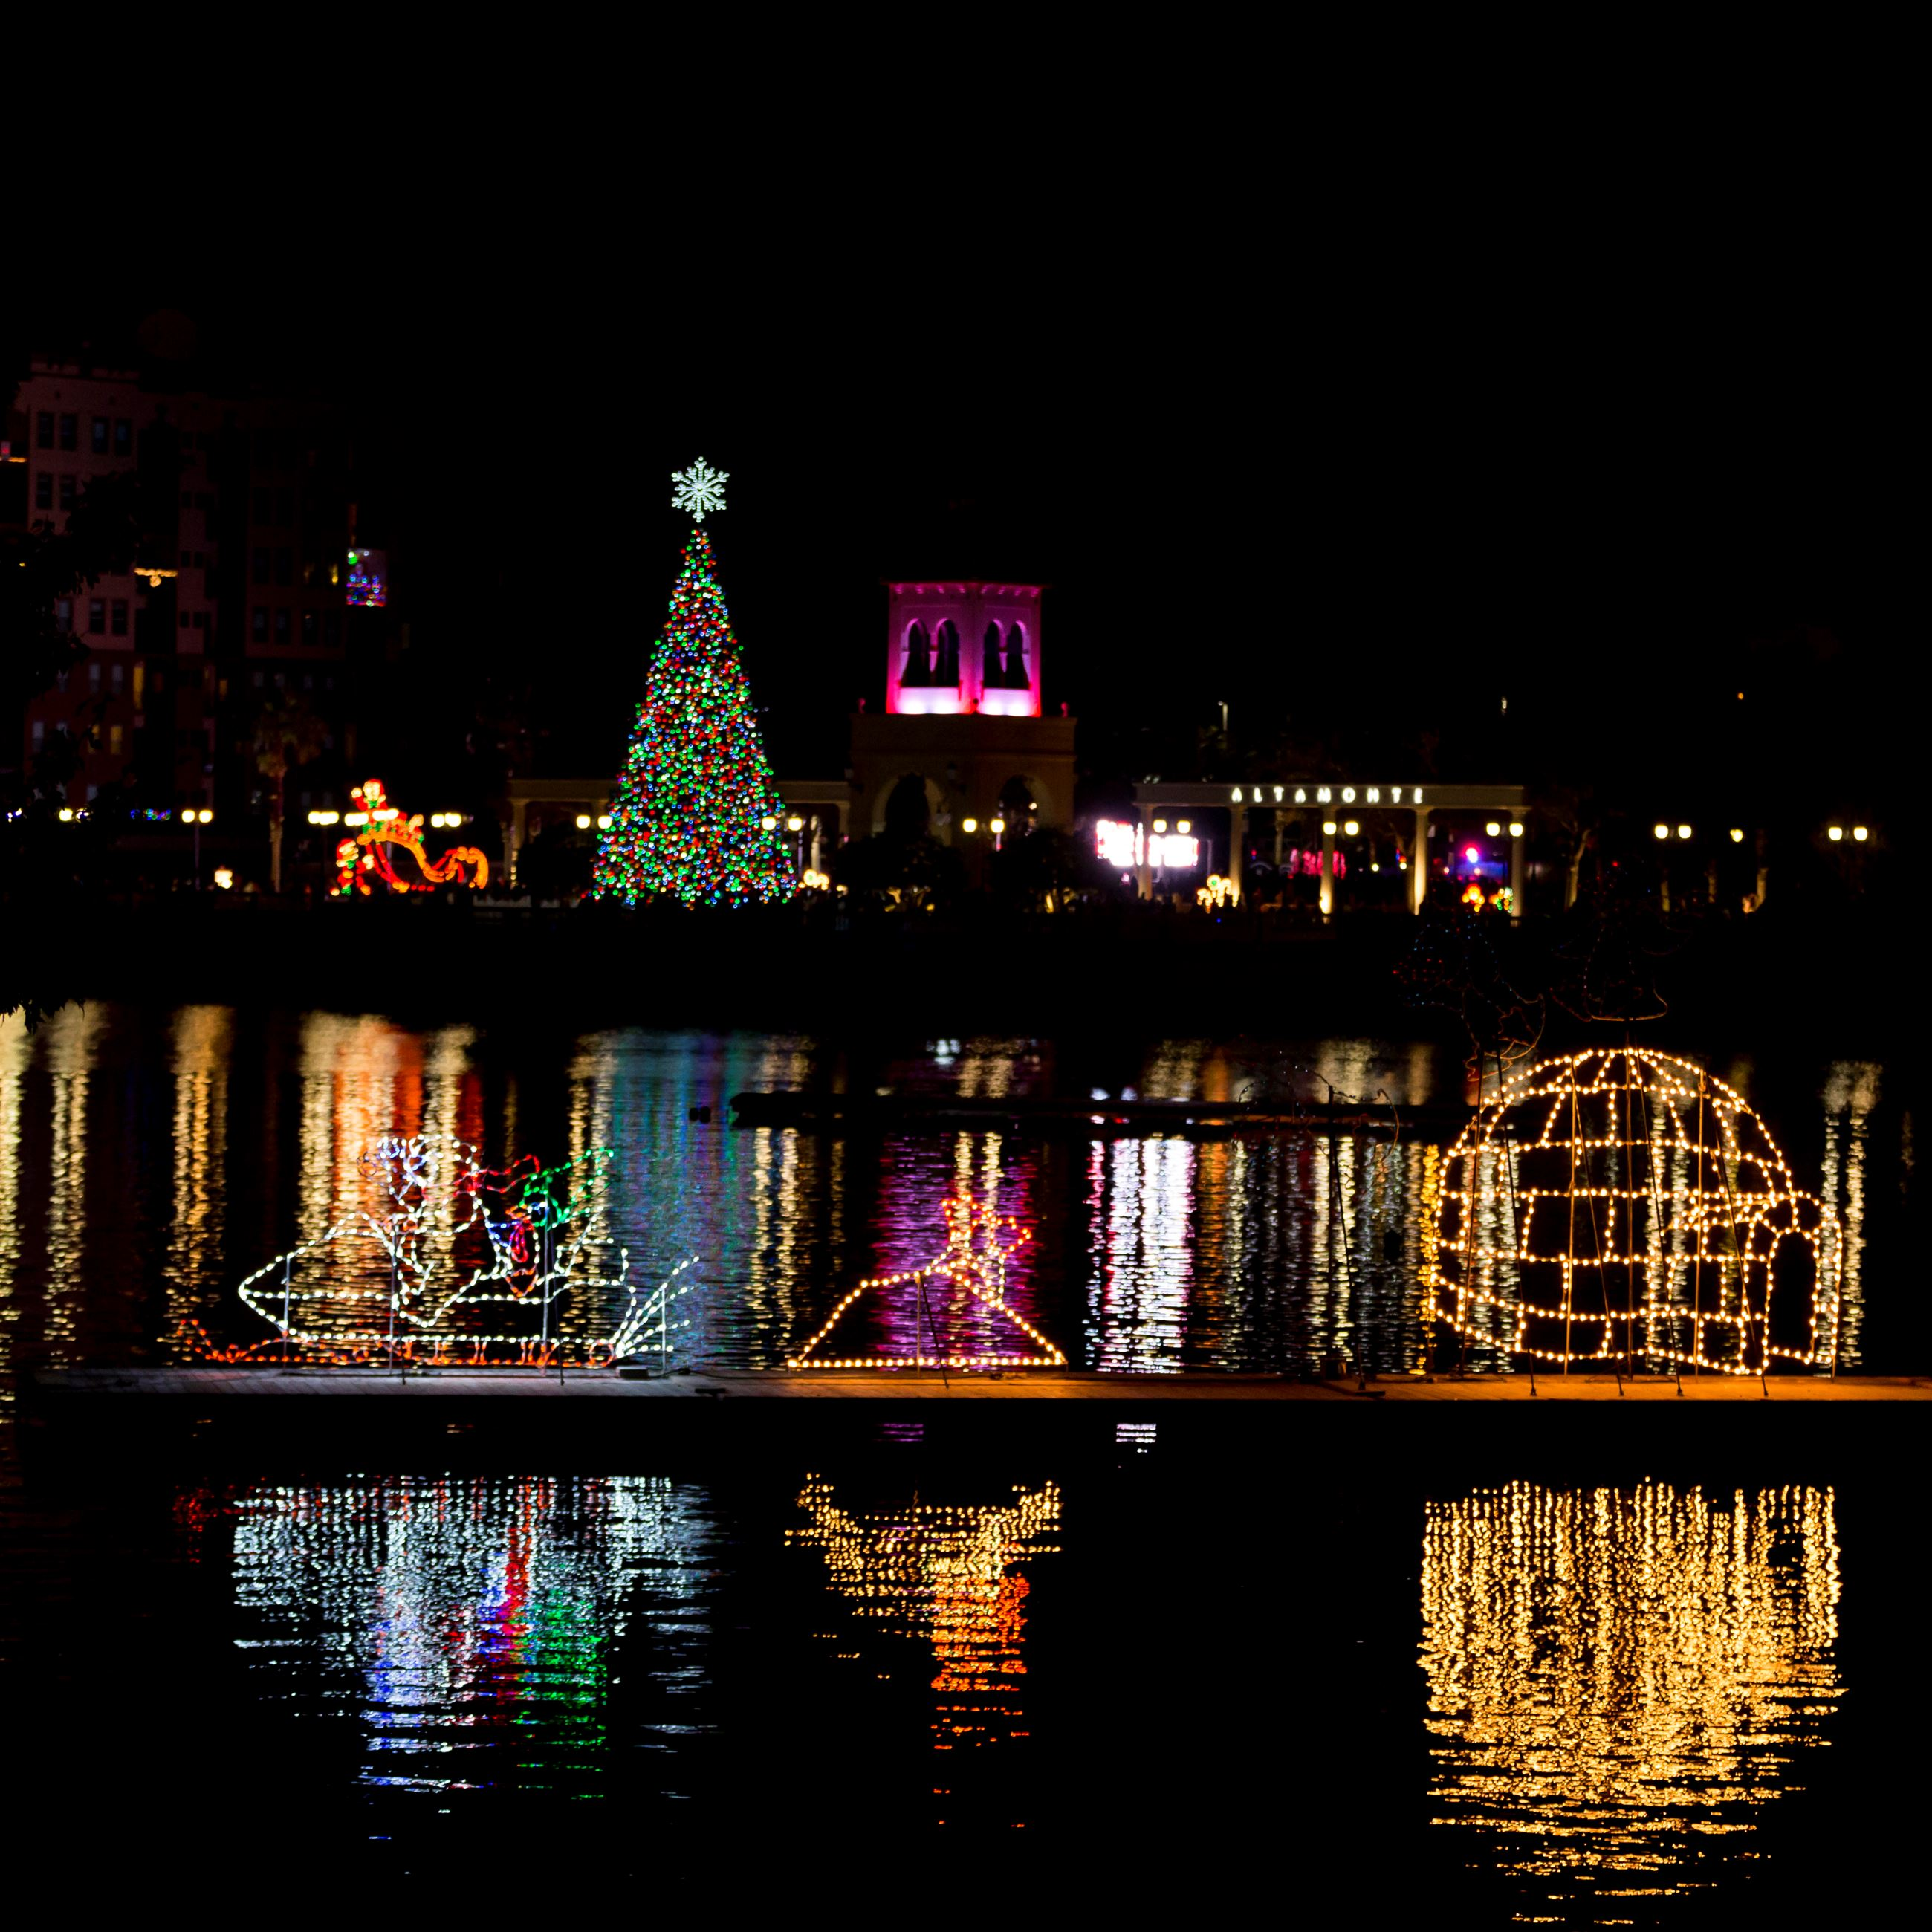 Holiday Lights at Cranes Roost Park